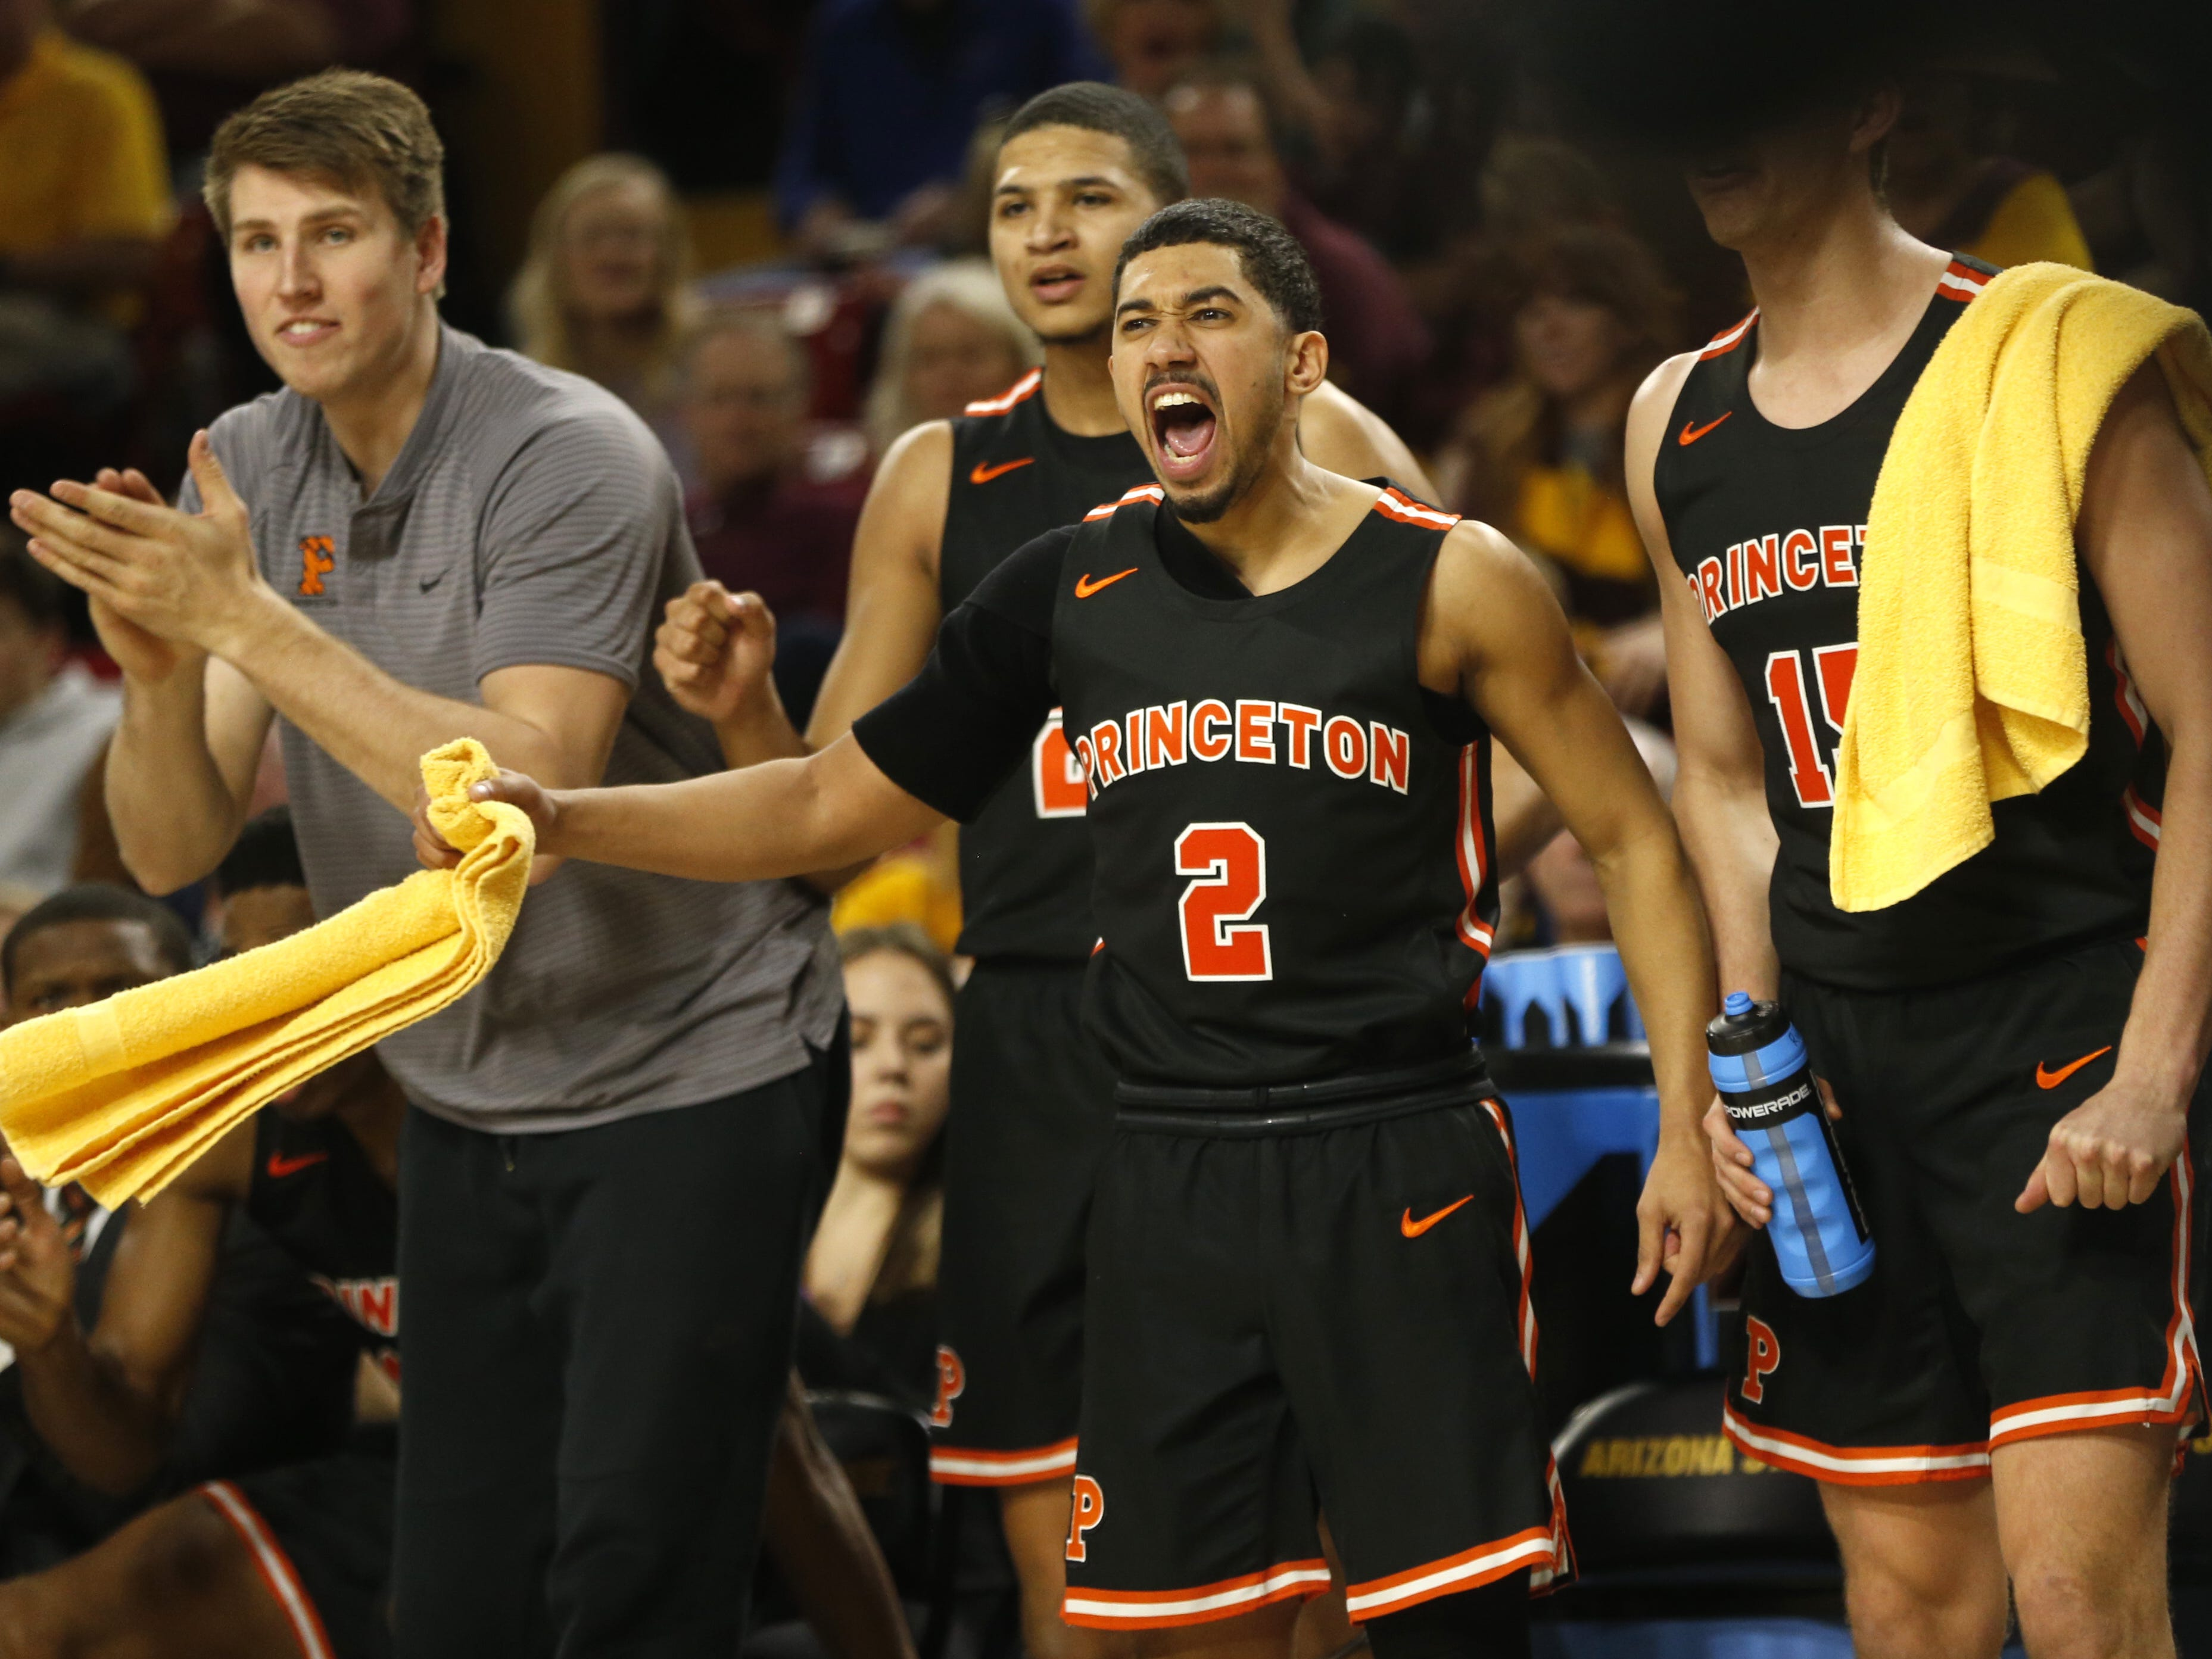 Princeton's Jose Morales (2) reacts after his team forces a turnover against ASU during the first half at Wells Fargo Arena in Tempe, Ariz. on December 29, 2018.